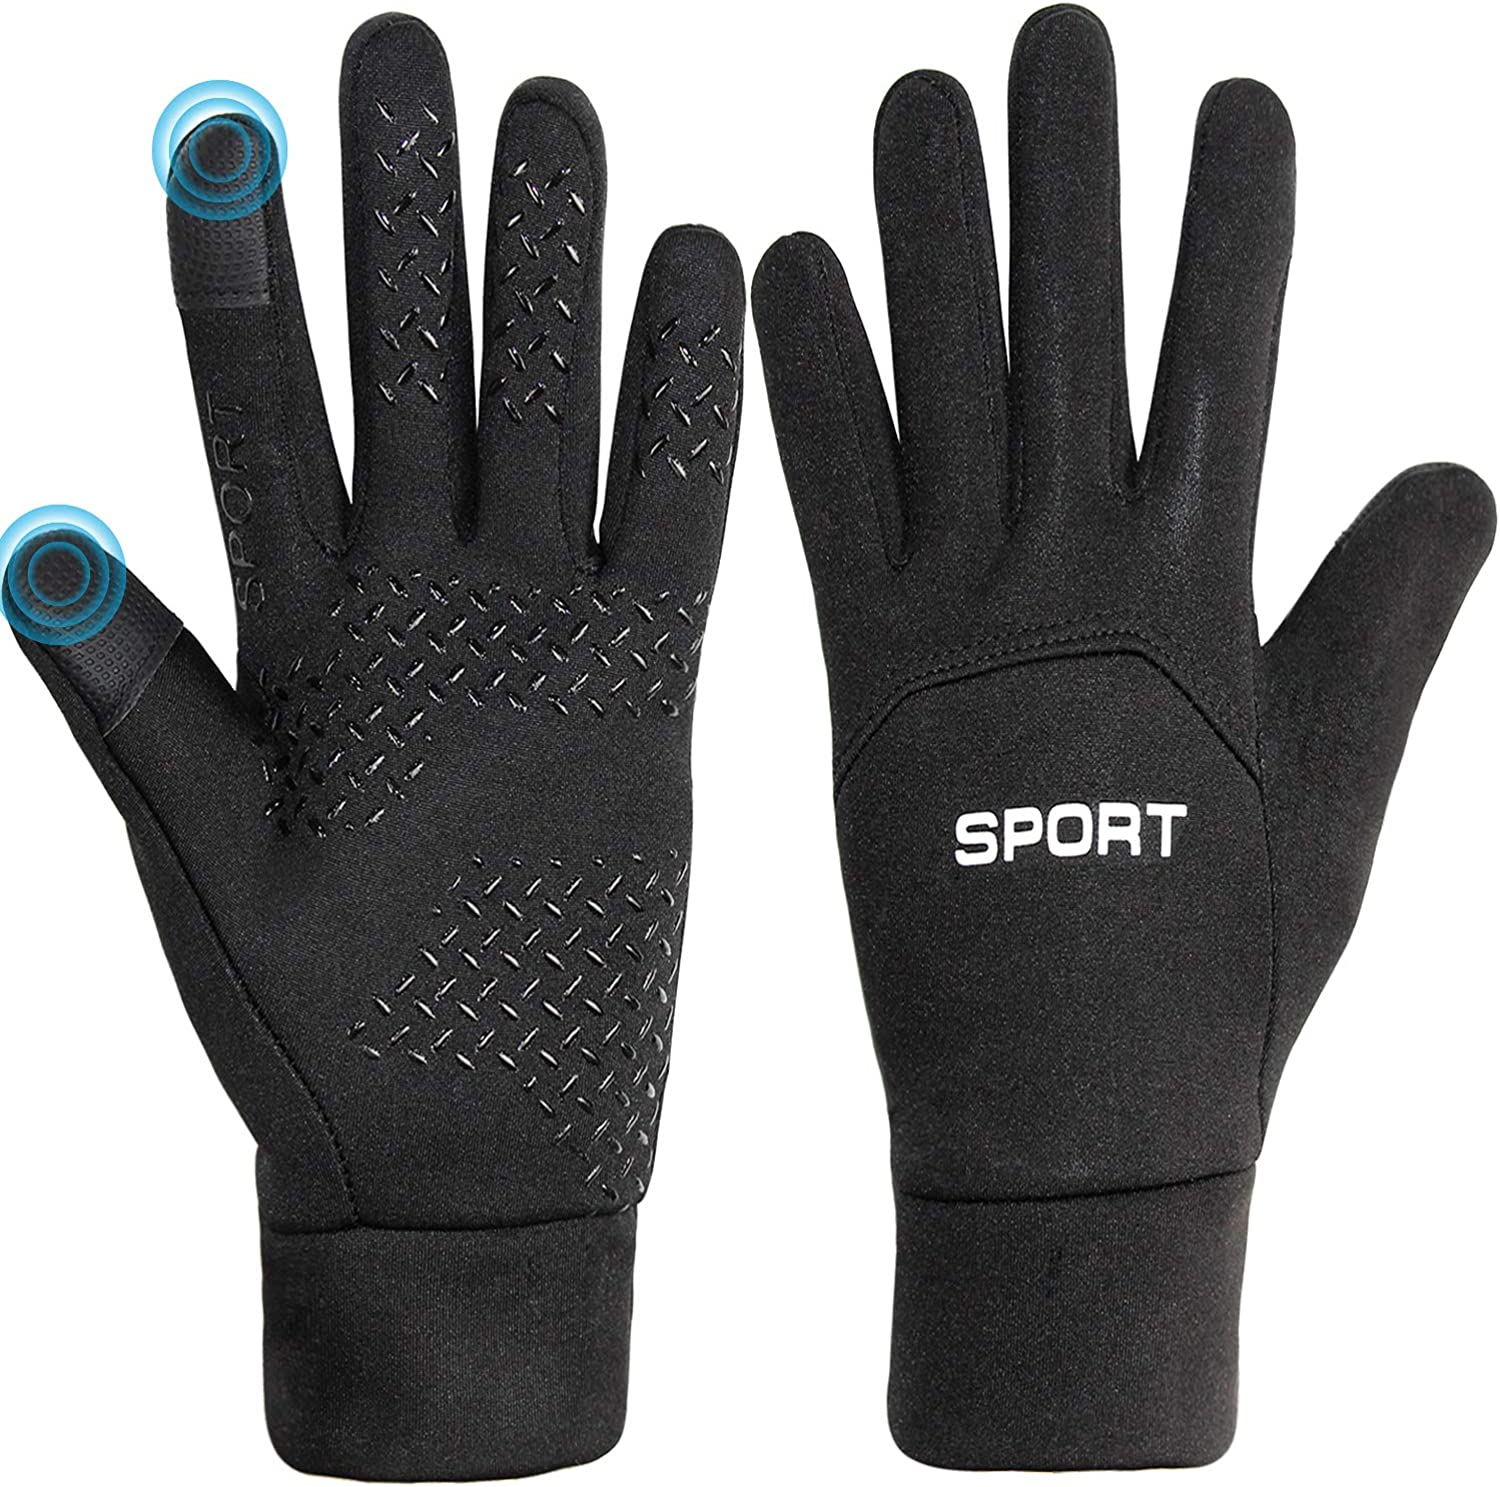 Touchscreen Cycling Gloves For Men Women Warm Lightweight Running Gloves Cold Weather